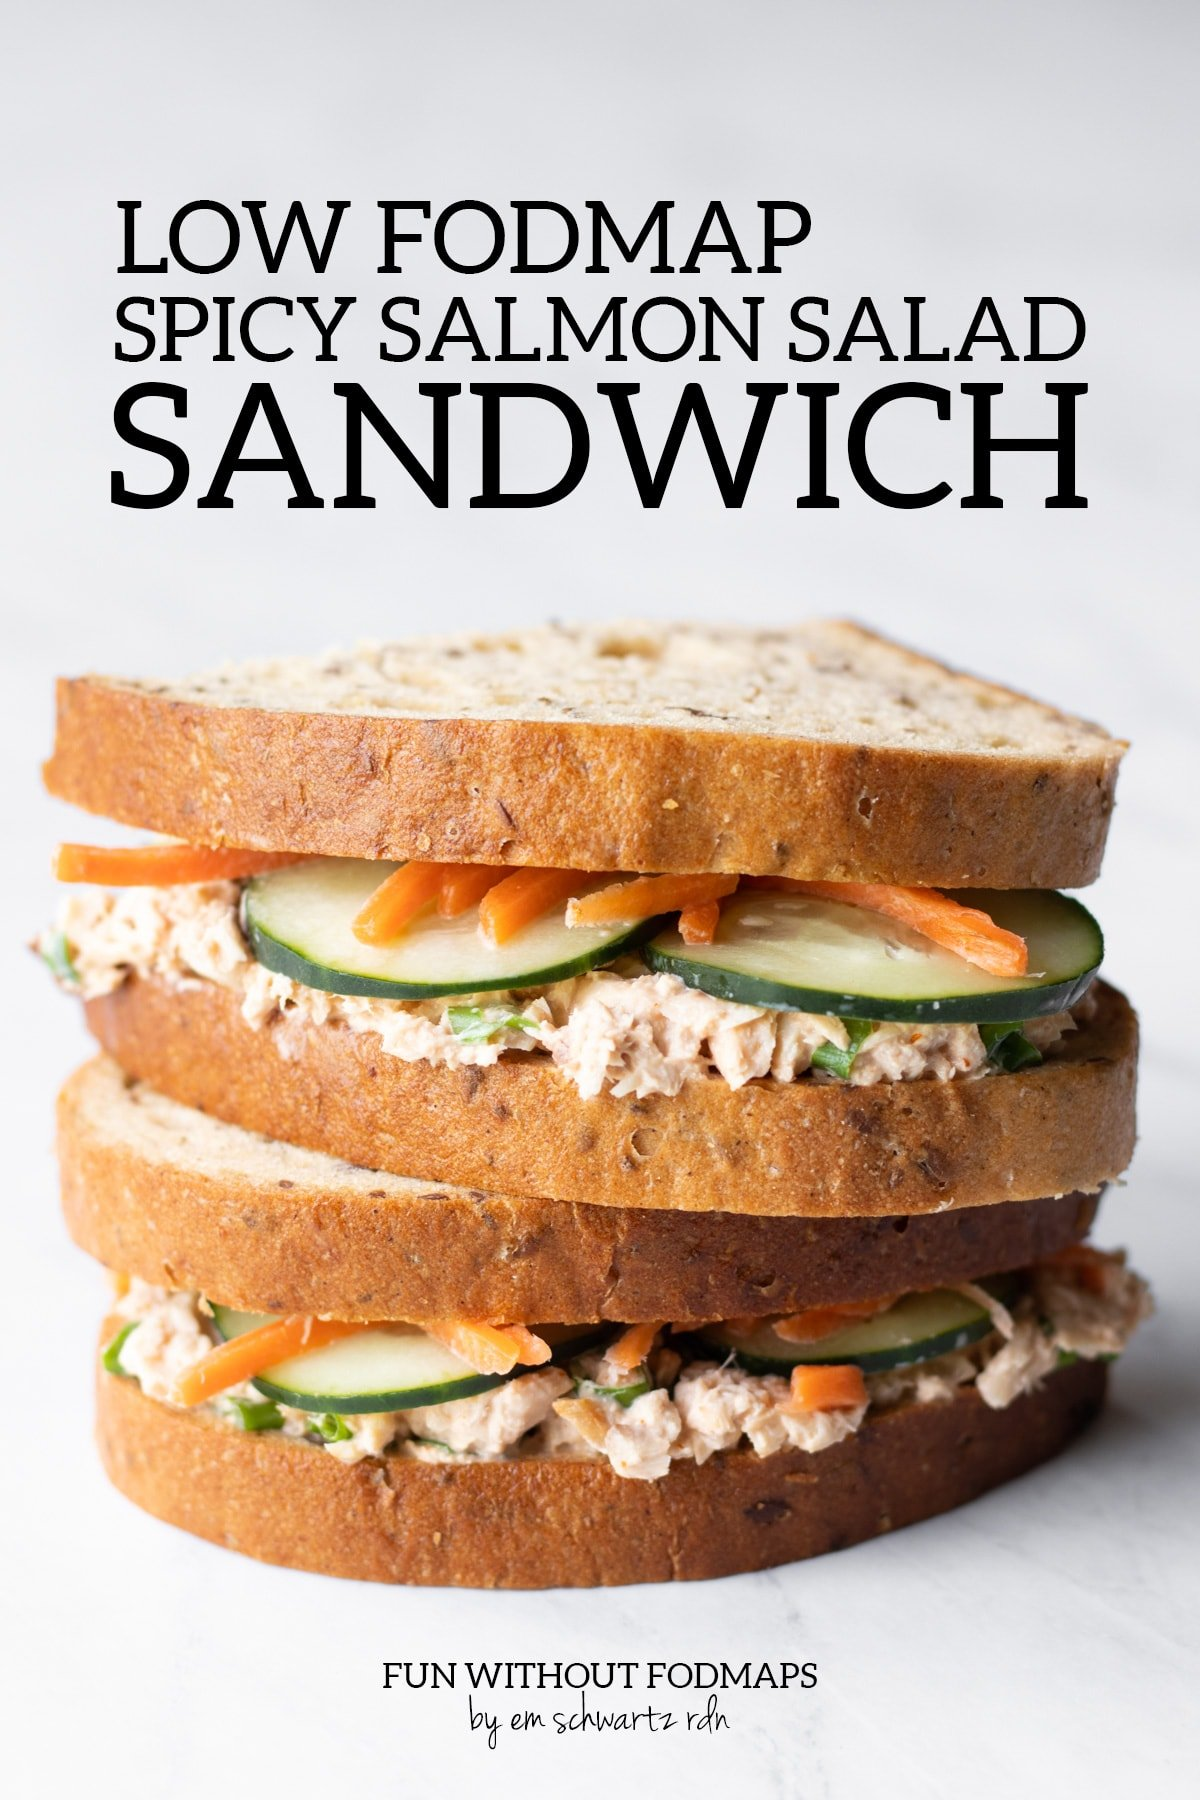 "Halves of a spicy salmon salad sandwich are stacked on top of one another. There are bits of cucumber slices and carrot matchsticks peeking out in between the bread and the salmon spread. Above the stacked sandwich, black text reads ""Low FODMAP Spicy Salmon Salad Sandwich"". Below the sandwich in small black text, it says ""FUN WITHOUT FODMAPS by Em Schwartz RDN"""